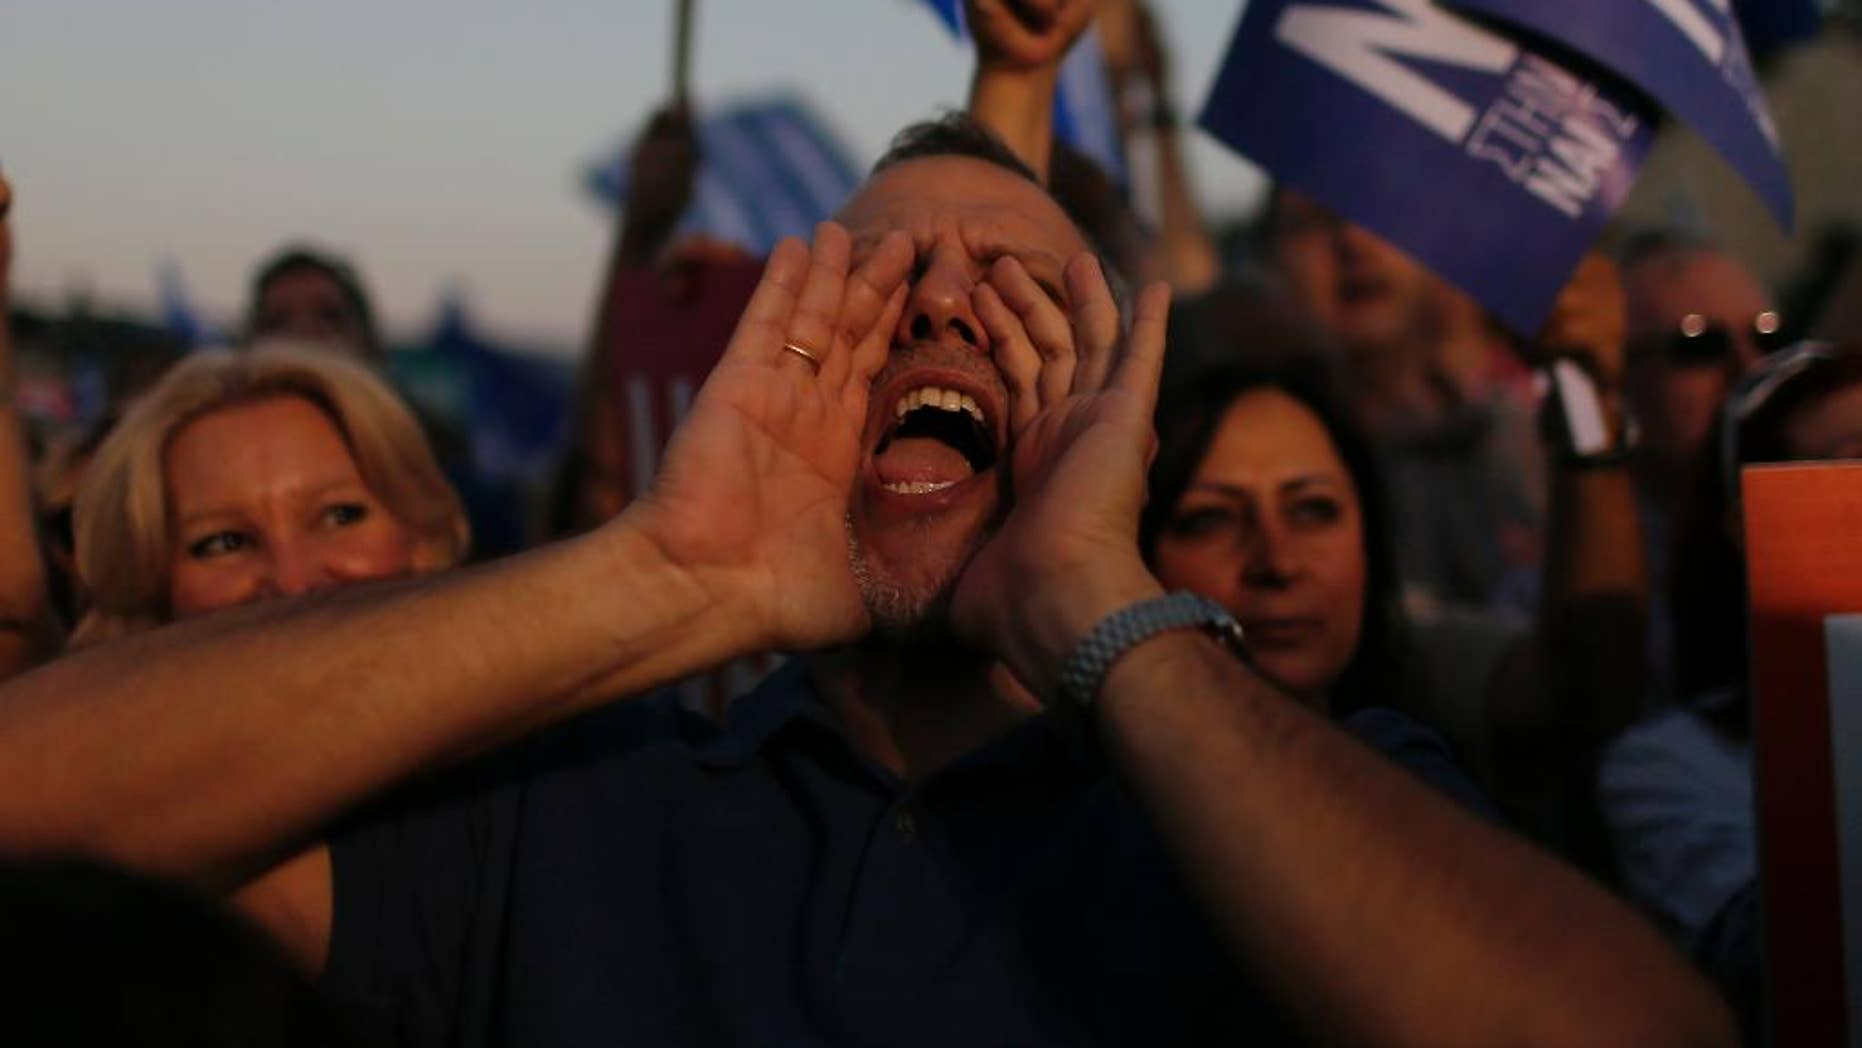 A demonstrator shouts slogans during a rally organized by supporters of the Yes vote in Athens, Friday, July 3, 2015. A new opinion poll shows a dead heat in Greece's referendum campaign with just two days to go before Sunday's vote on whether Greeks should accept more austerity in return for bailout loans. (AP Photo/Emilio Morenatti)